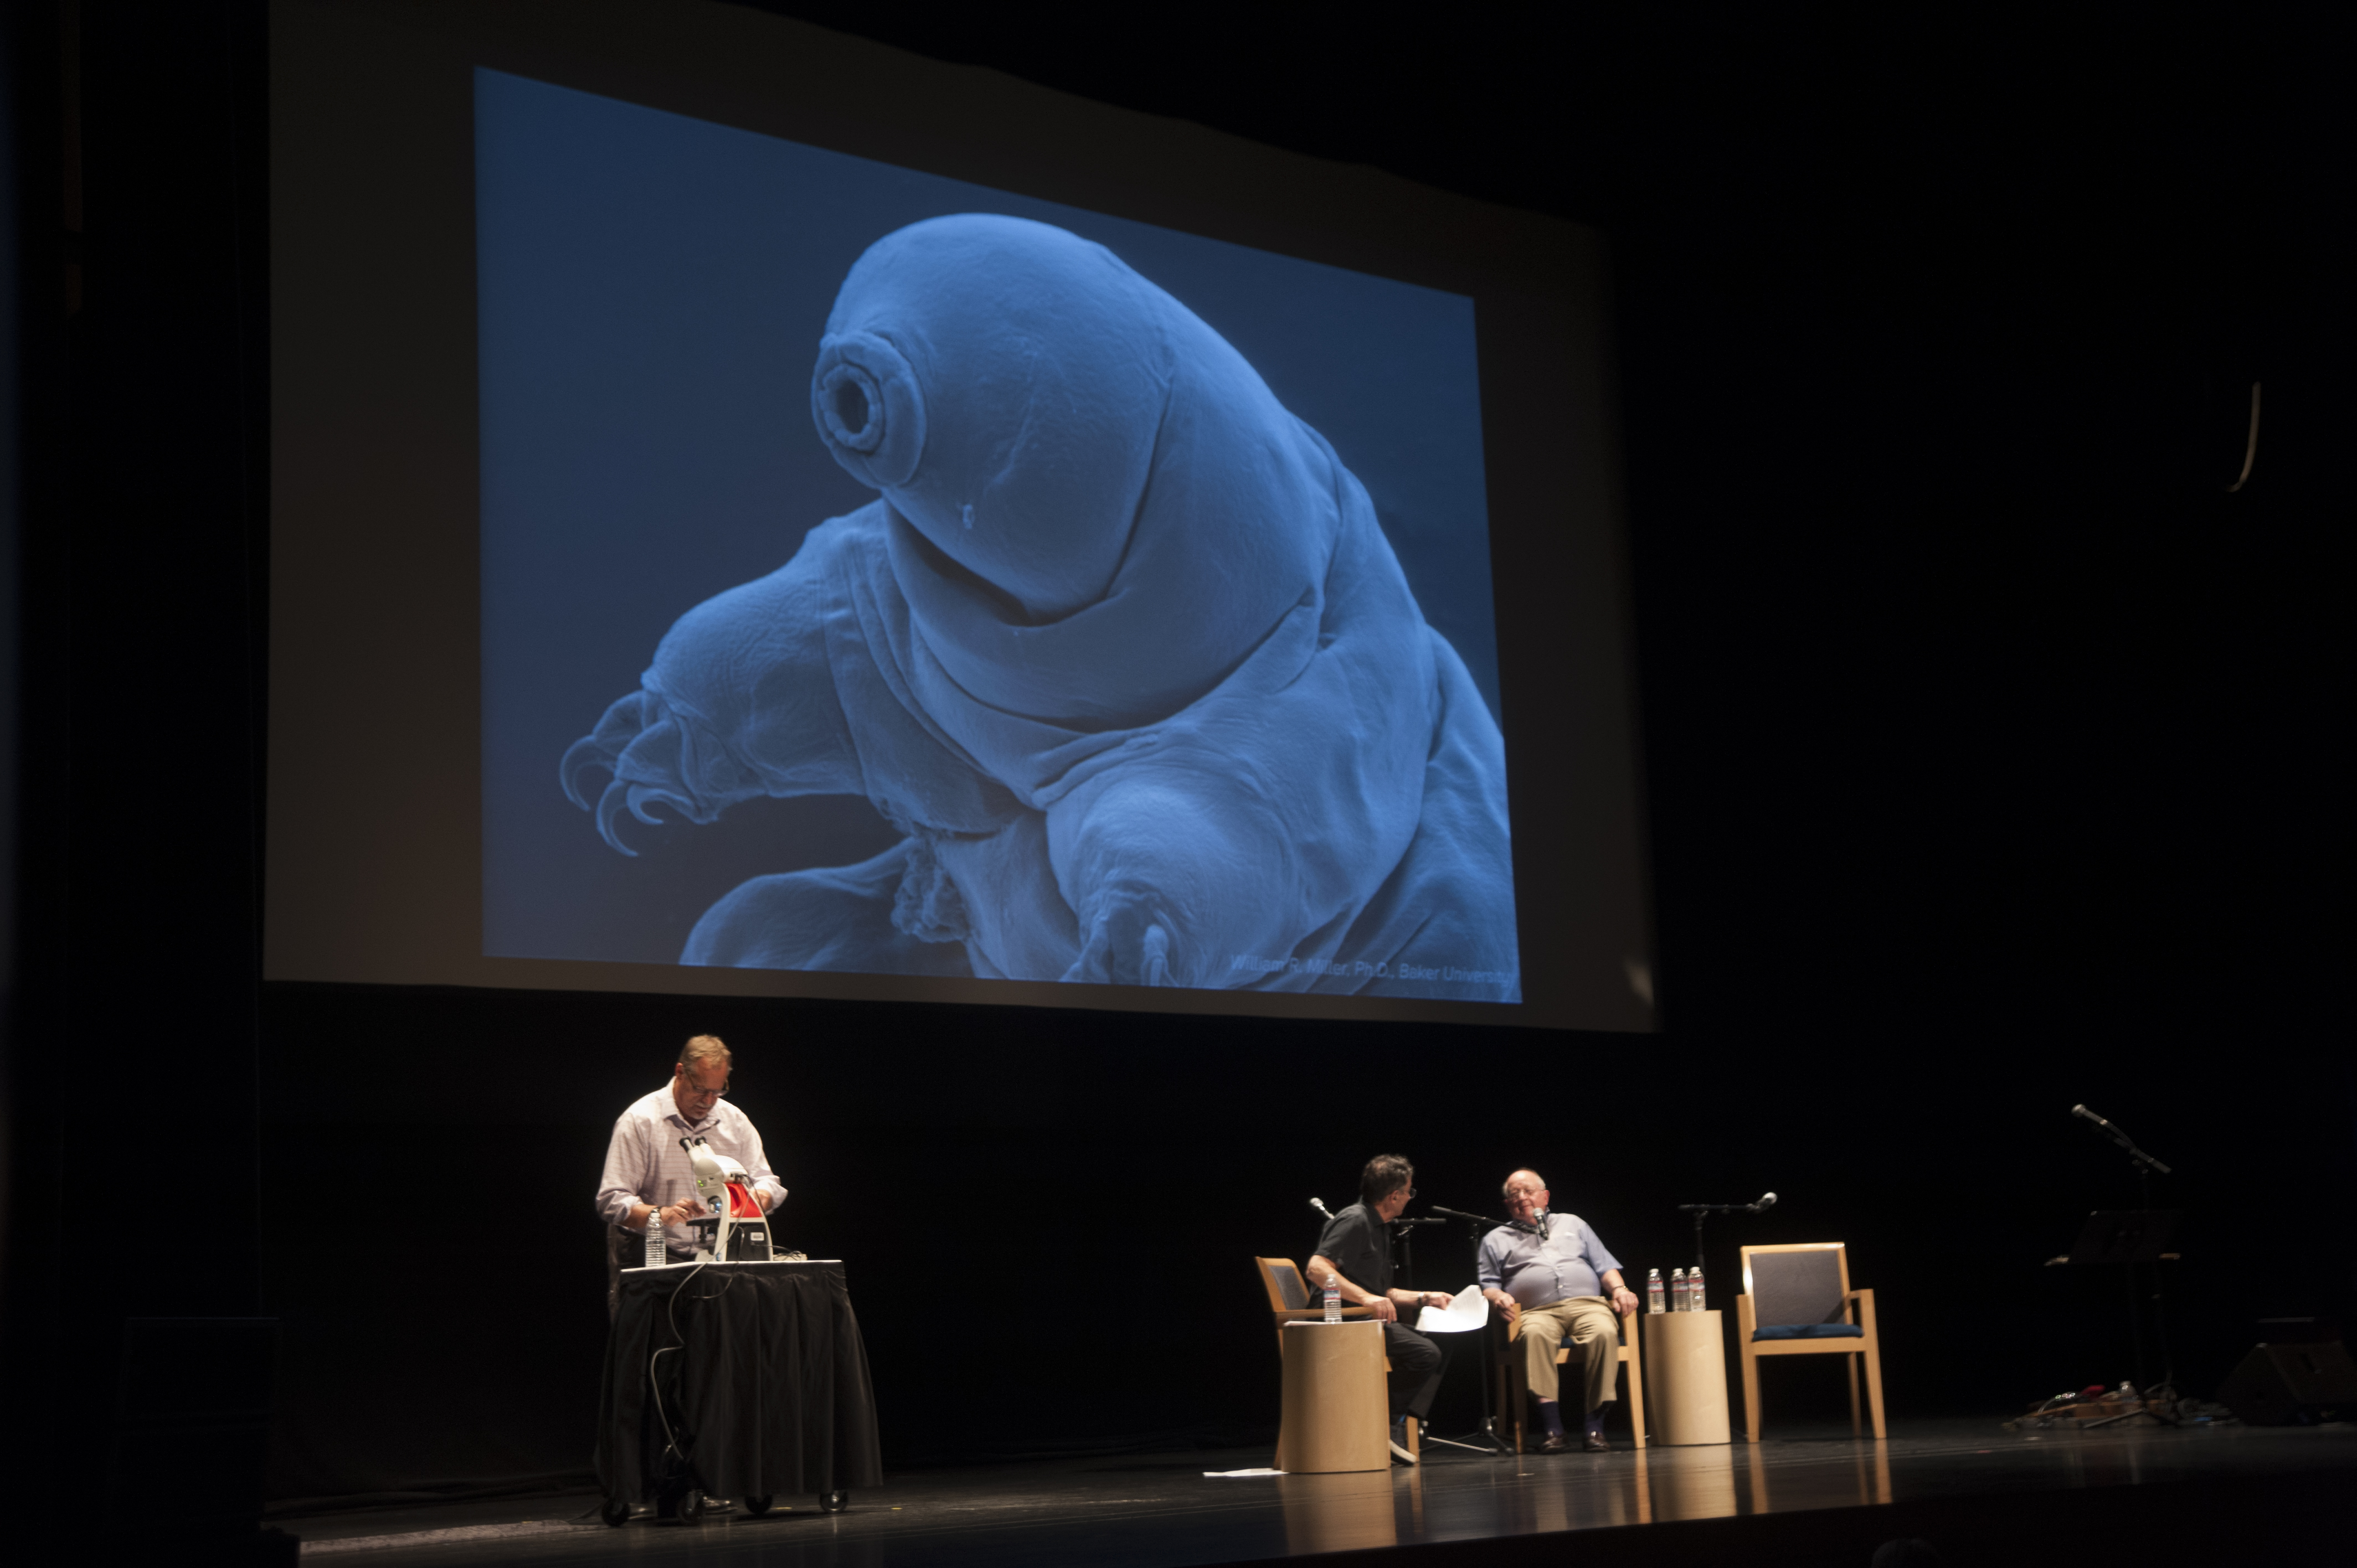 From lef to right: Carl Johansson, Ira Flatow, and John Crowe discussing the tardigrade. Credit: Adeline Xu/UC Davis